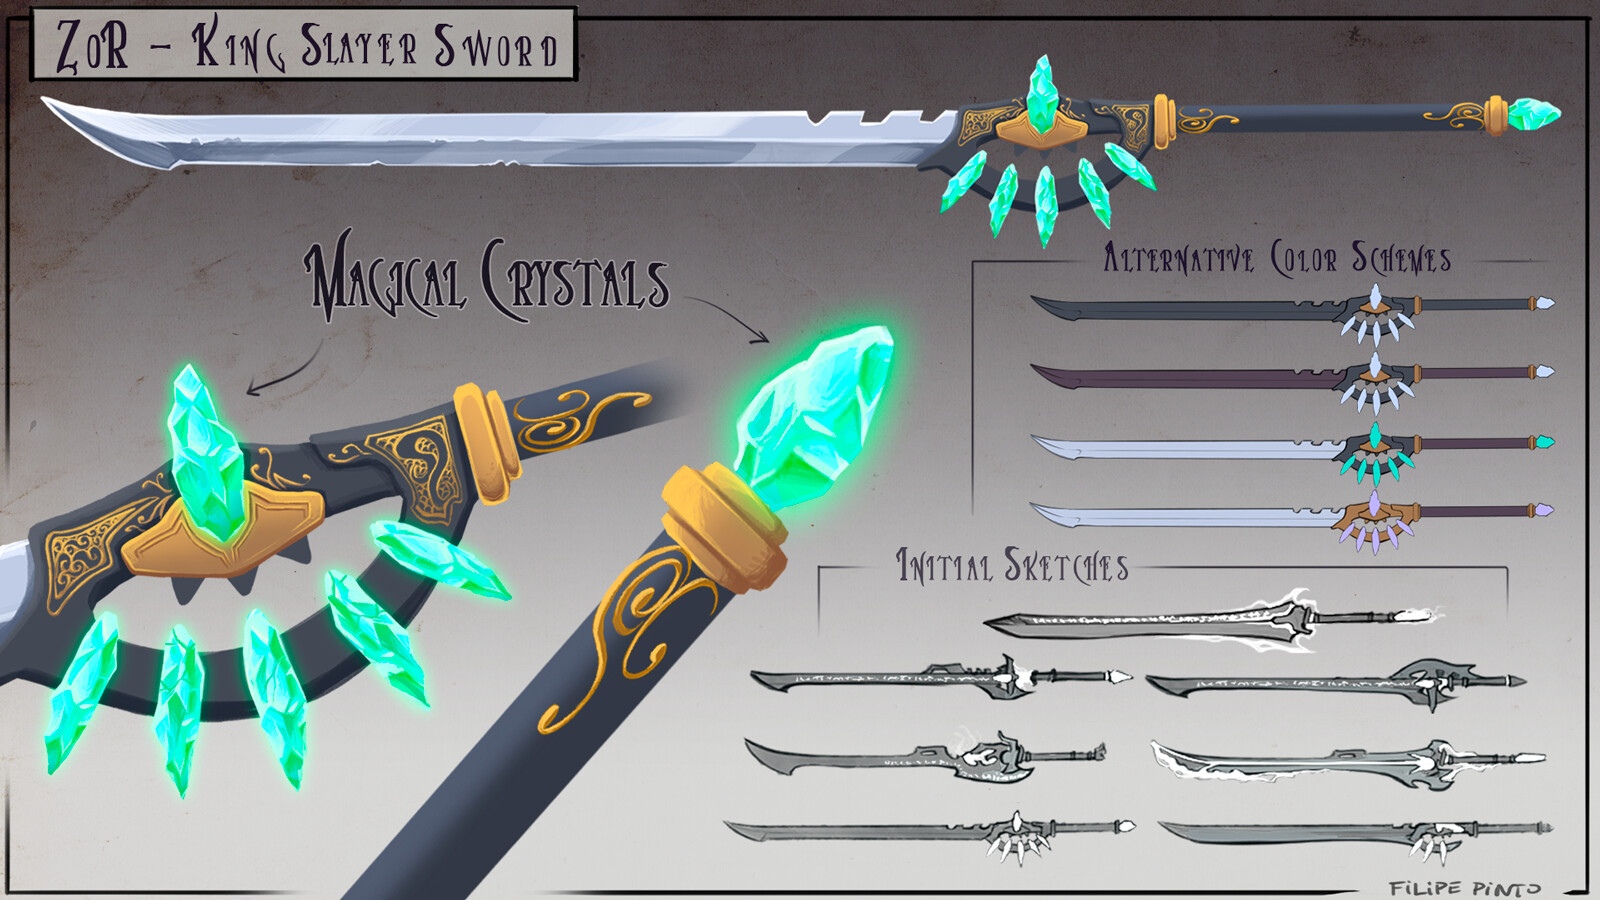 ZOR - King Slayer Sword